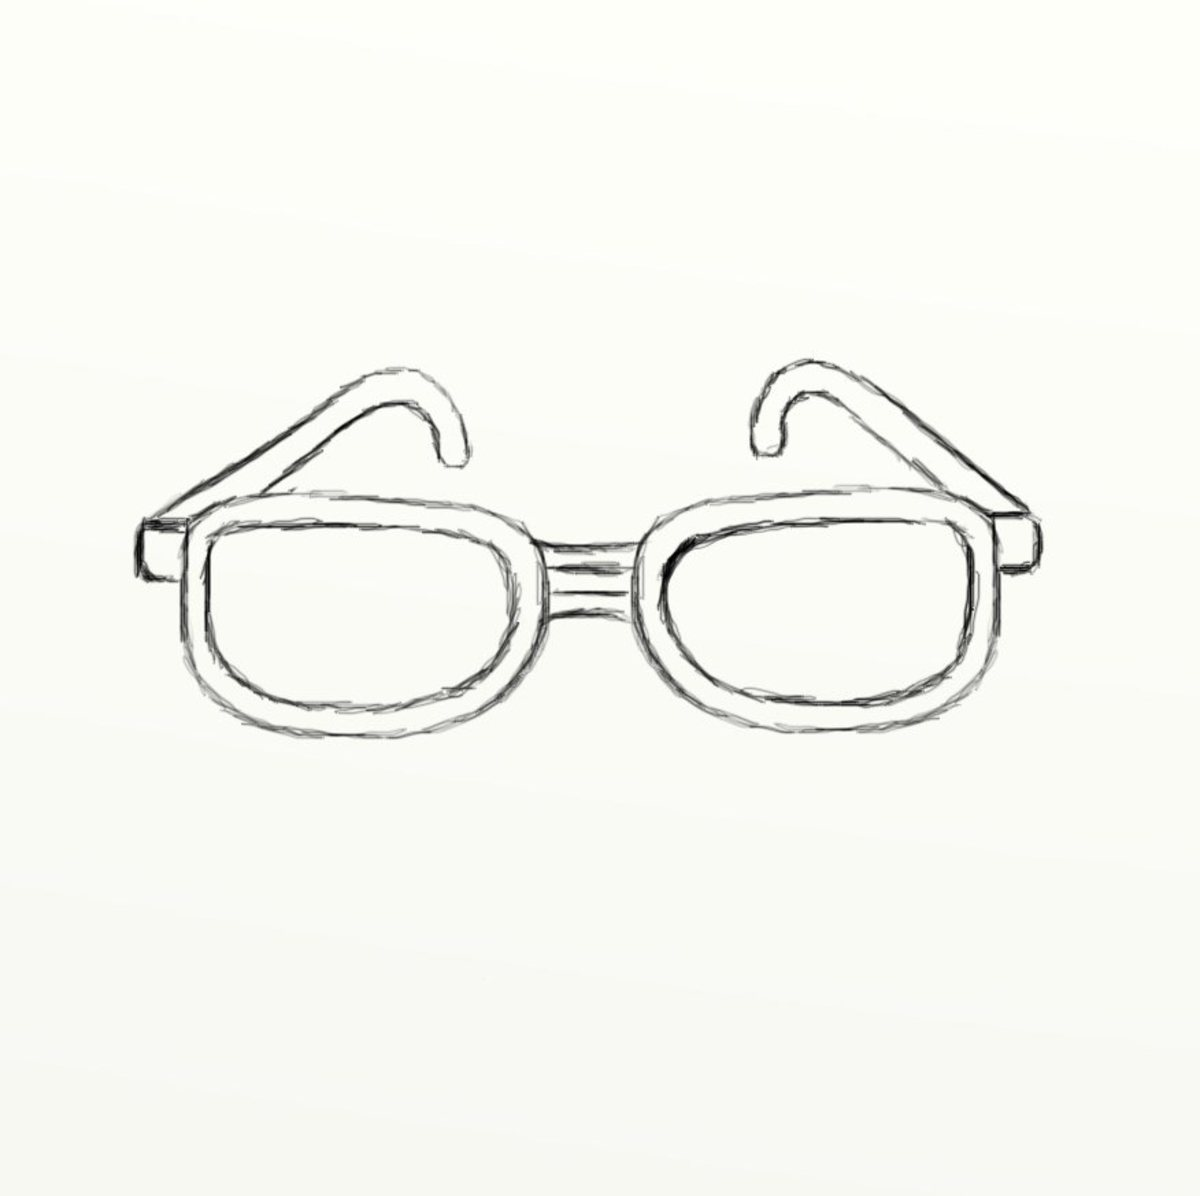 dd9d2d0ad026 How to Draw Eye Glasses